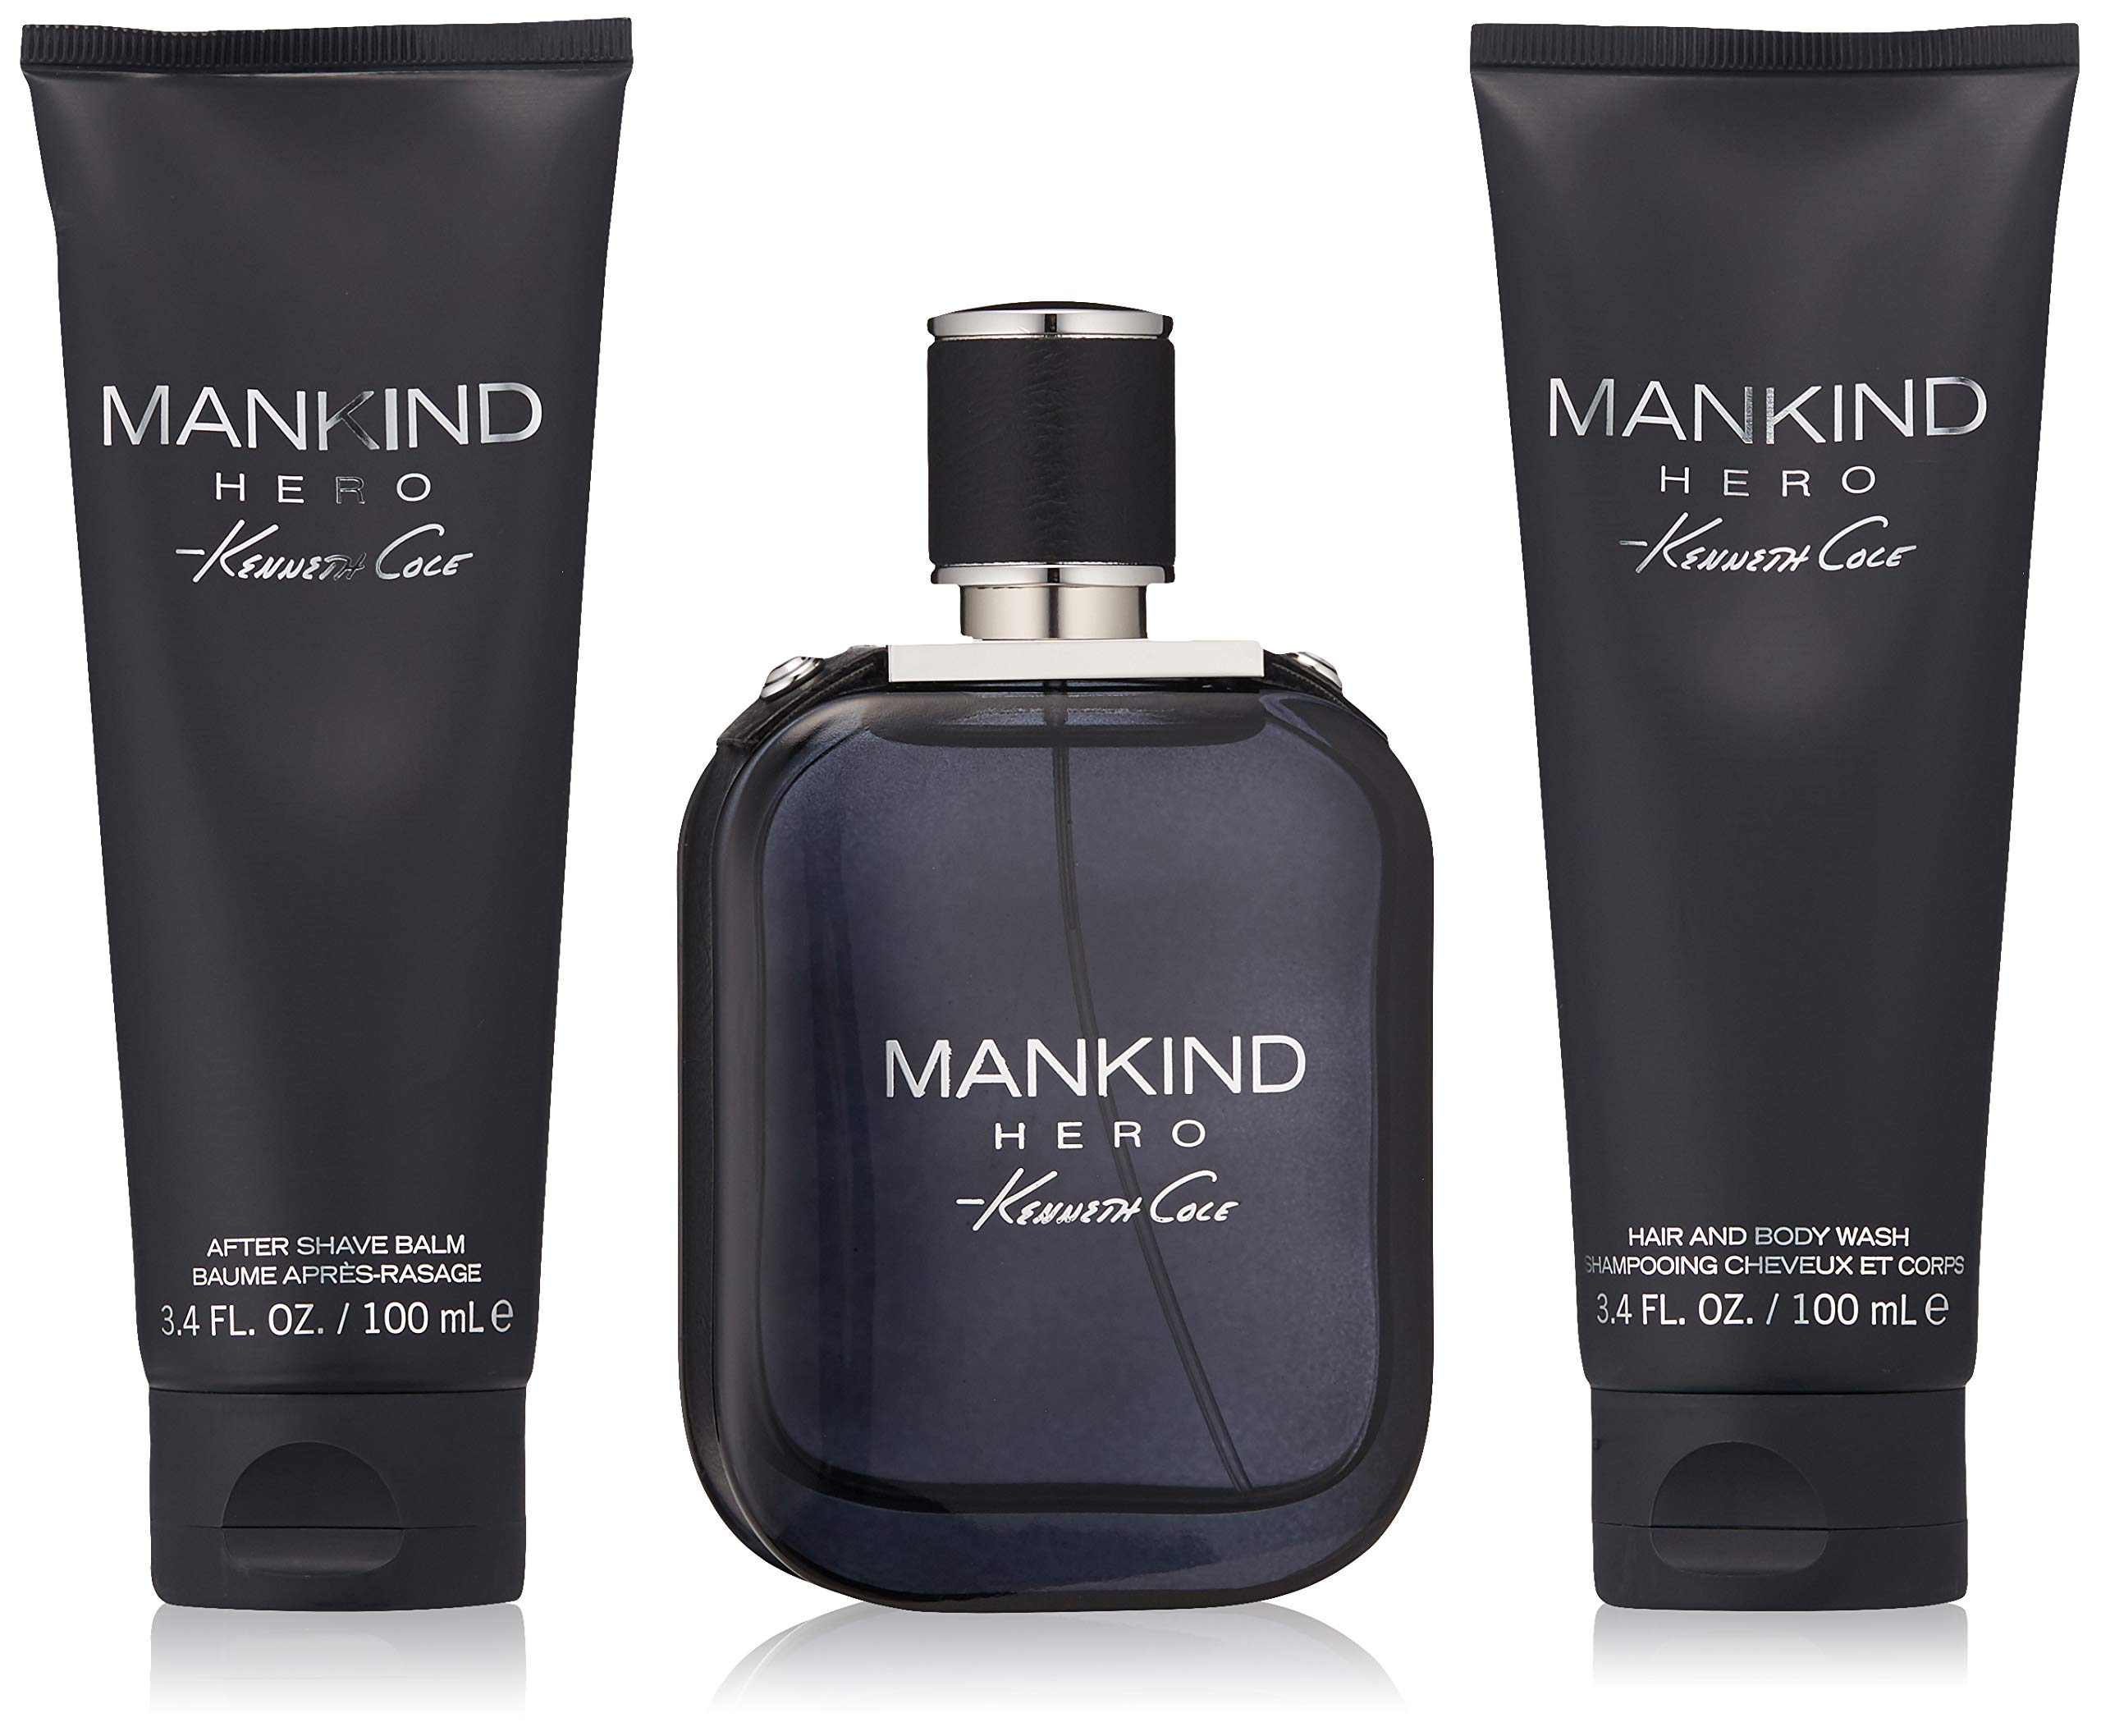 Kenneth Cole 3 Piece Mankind Hero Gift Set, 3.4 Oz. by Kenneth Cole